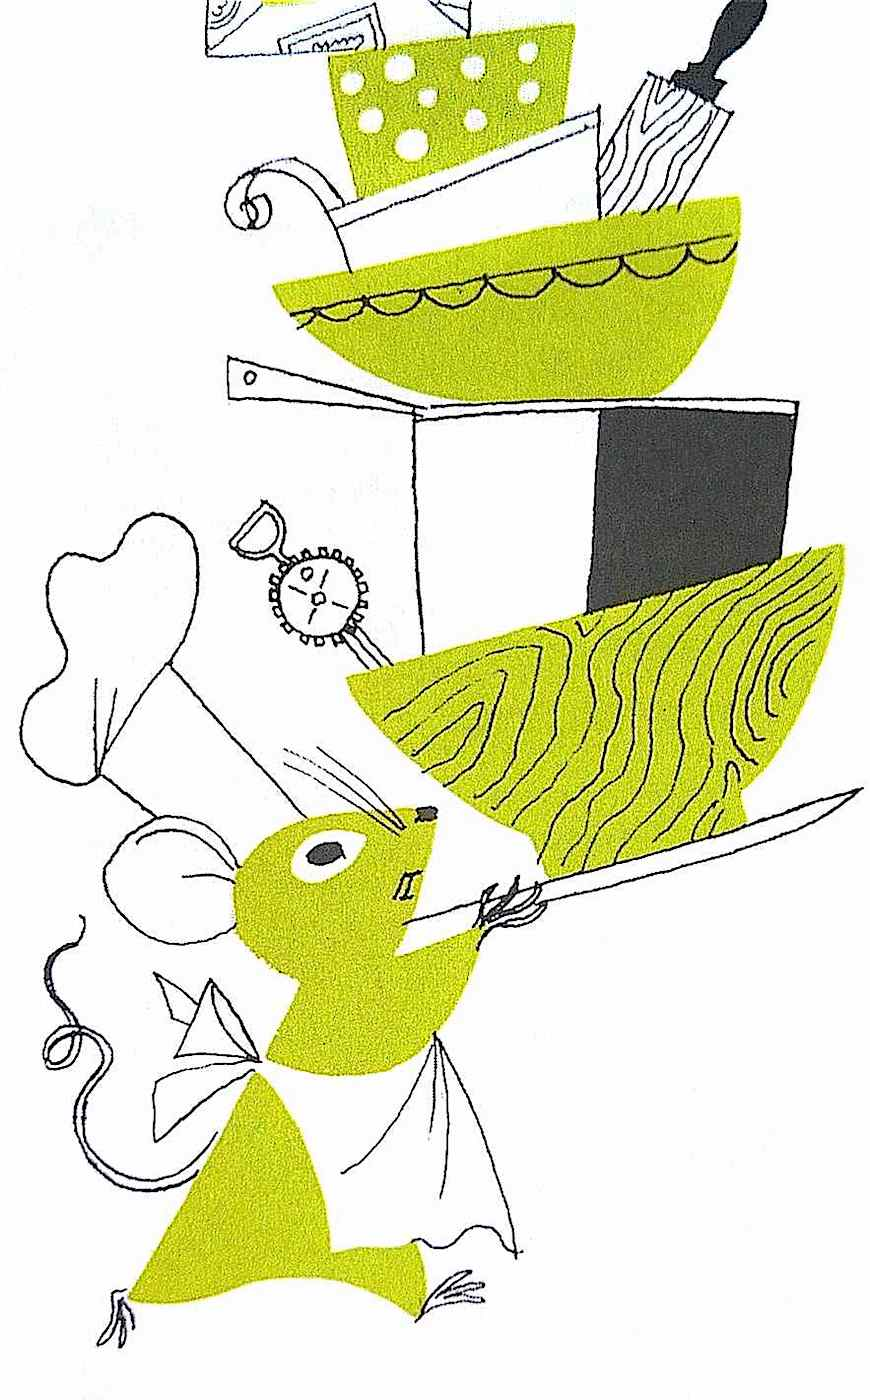 an Alice & Martin Provinson children's illustration of a mouse chef